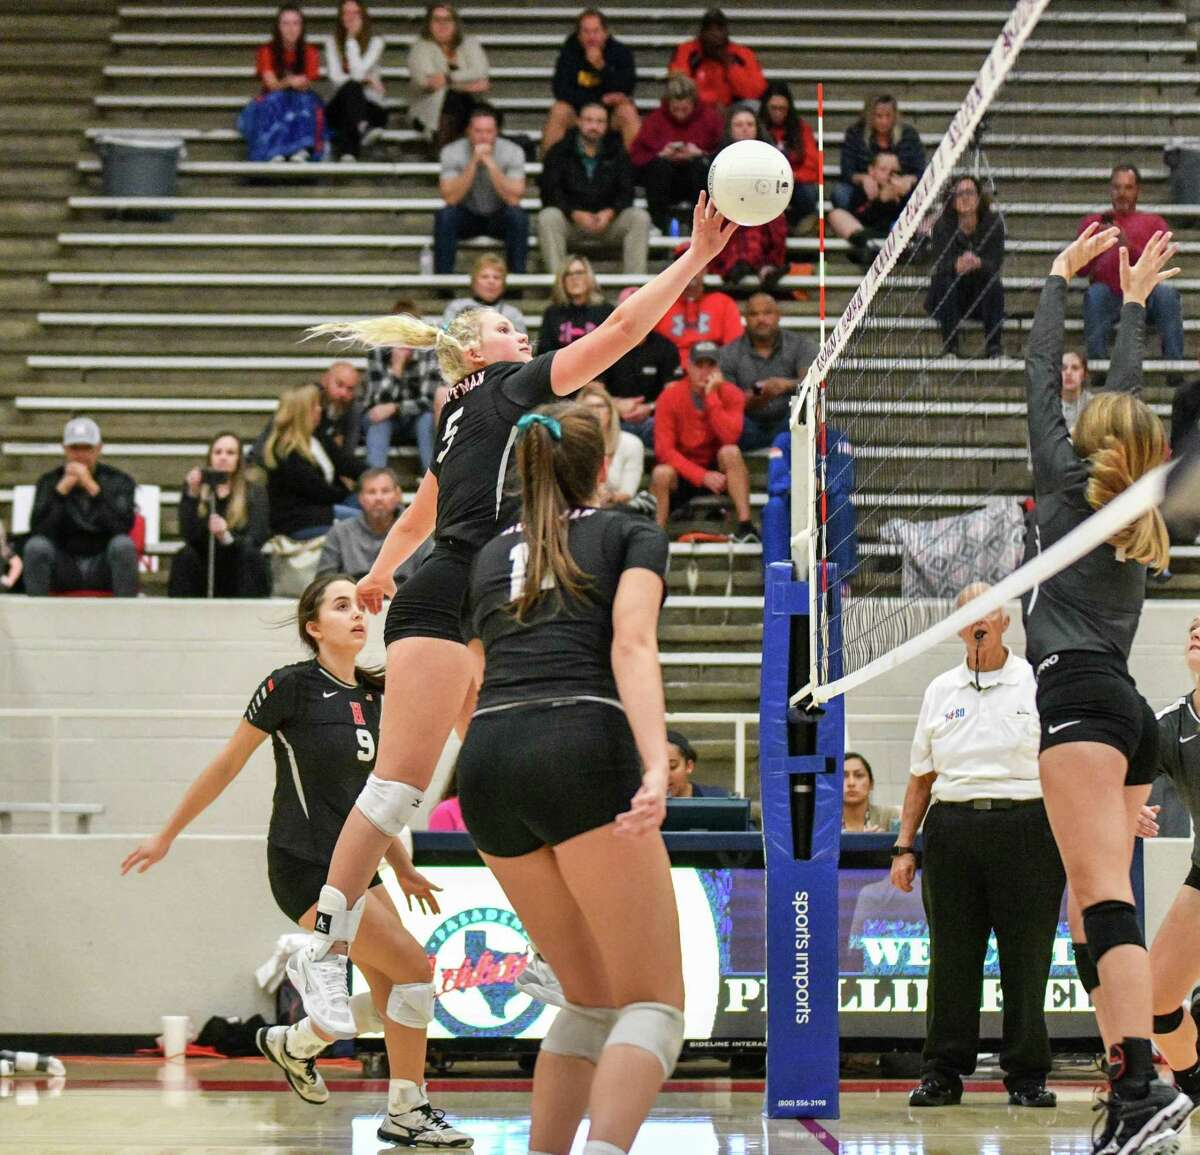 Hargrave's Breanna Jones (5) goes for a kill during an Area round playoff matchup against Columbia on Nov. 8 at Phillips Fieldhouse in Pasadena